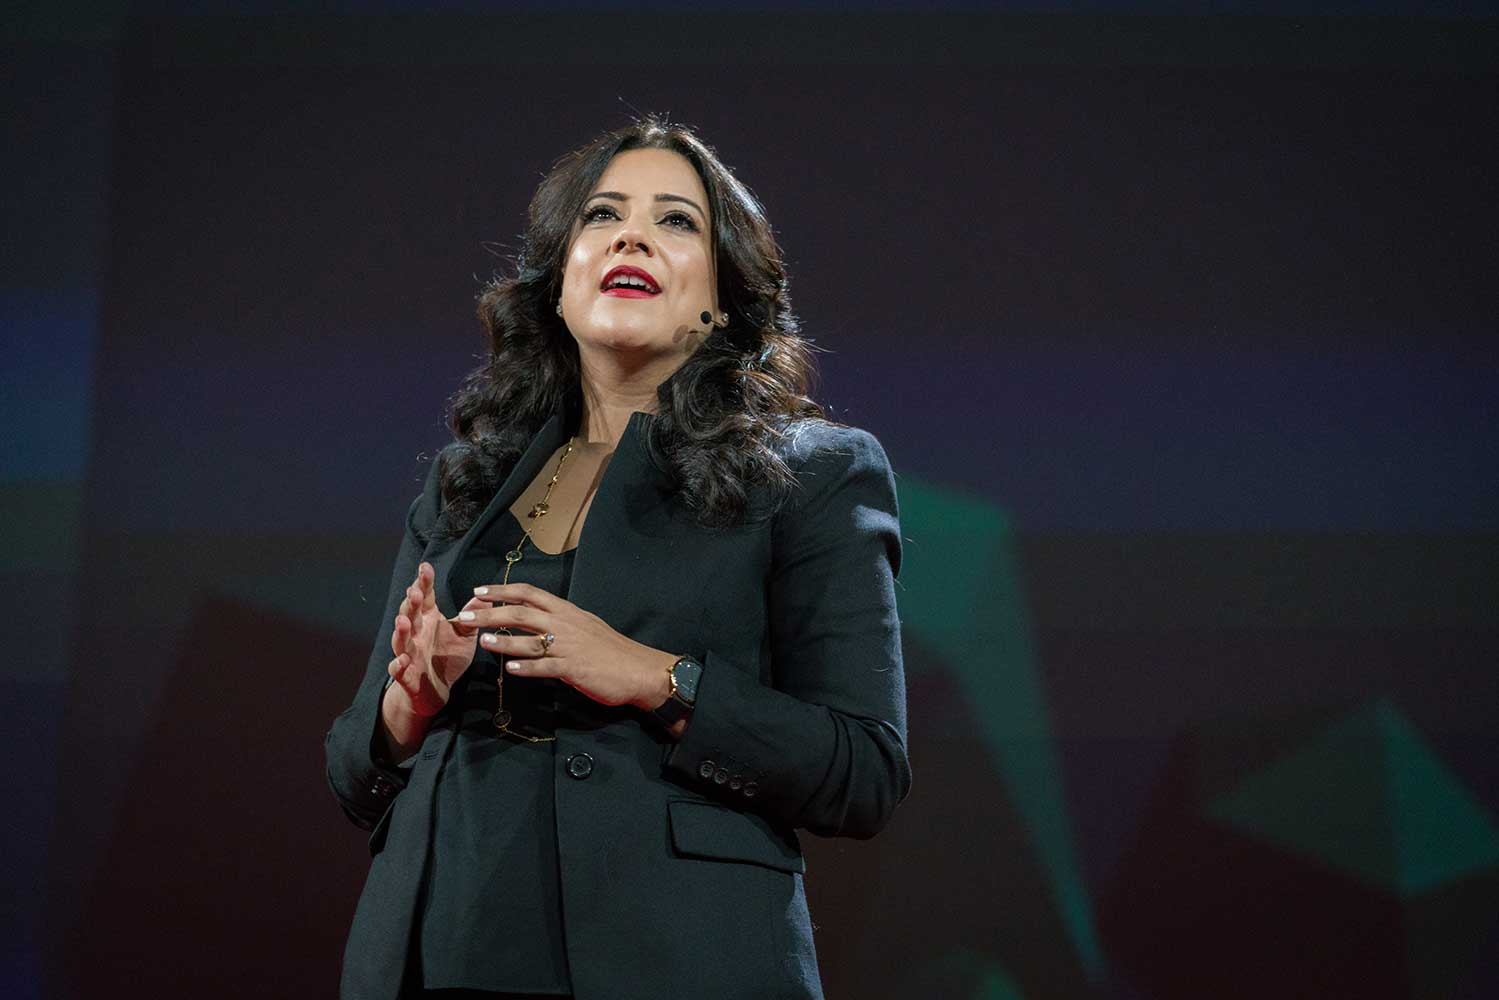 Reshma Saujani speaks at TED2016 - Dream, Session 6 - Code Power, February 15-19, 2016, Vancouver Convention Center, Vancouver, Canada. Photo: Bret Hartman / TED